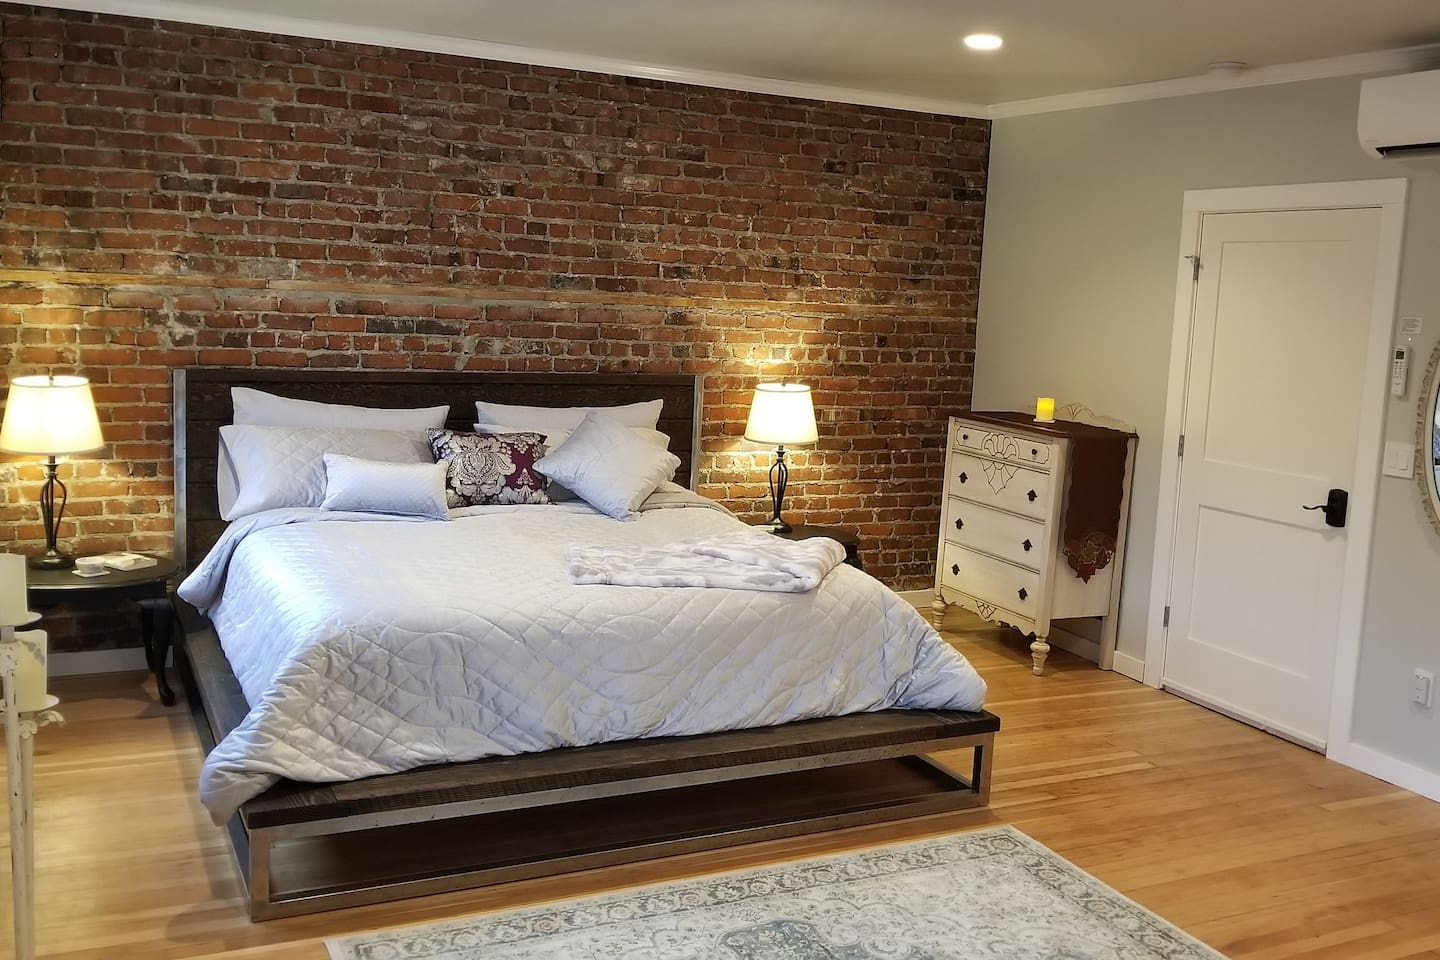 This beautiful space underwent a major remodel, completed in late December of 2018.  It features refinished Fir wood floors throughout, new king size 3 layer foam bed with organic bamboo sheets. Ultra quiet ductless heat and air conditioning system that you have full control of. The kitchen too has been transformed with new cabinets topped with Fir slab countertops and a gas stove.  The bathroom has been updated with new fixtures aside from the clawfoot tub being the one remaining touch of old. Fitted with a sliding shower head and curtain or you can soak with a book if you prefer.  This room has 3 good size windows overlooking the street below.